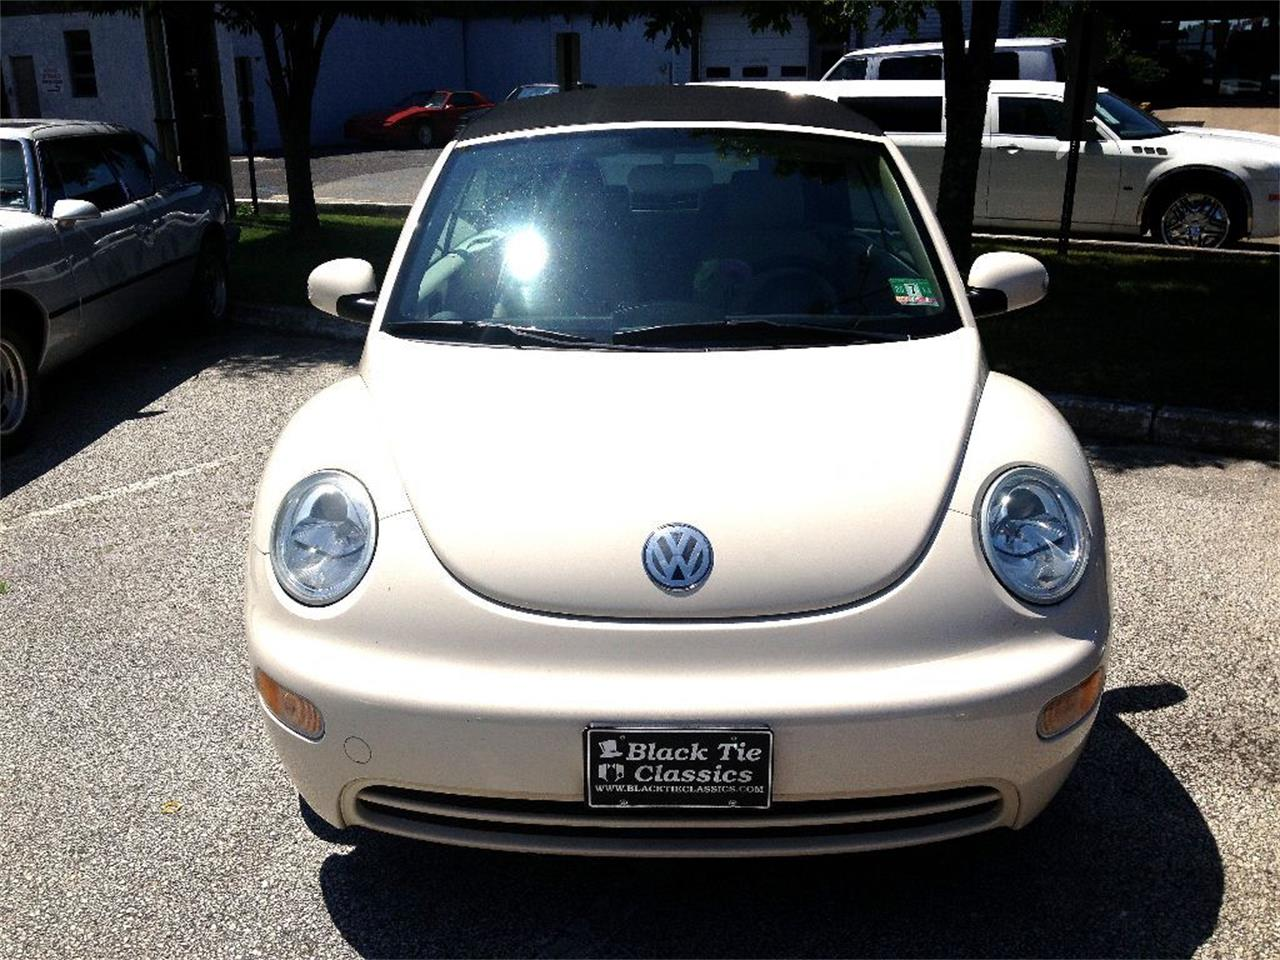 Large Picture of '05 Volkswagen Beetle located in Stratford New Jersey - $8,990.00 Offered by Black Tie Classics - P5DX